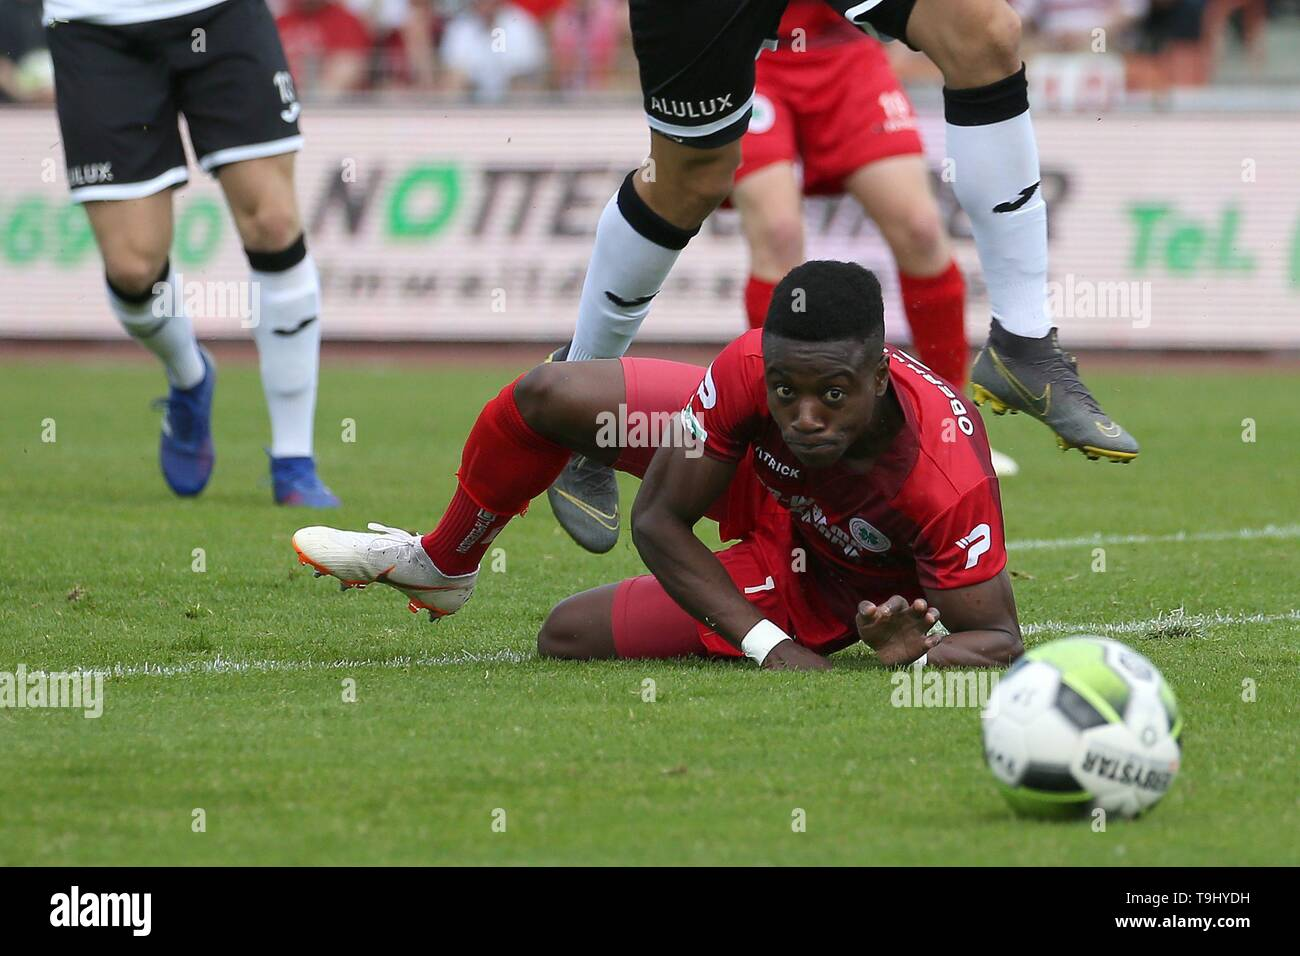 Oberhausen, Germany. 18th May, 2019. firo: 18.05.2019 Soccer, Regionalliga West, season 2018/2019 Rot-Weiss Oberhausen - SC Verl Shaibou Oubeyapwa (# 7, Rot-Weiss Oberhausen) can only look after the ball | usage worldwide Credit: dpa/Alamy Live News - Stock Image